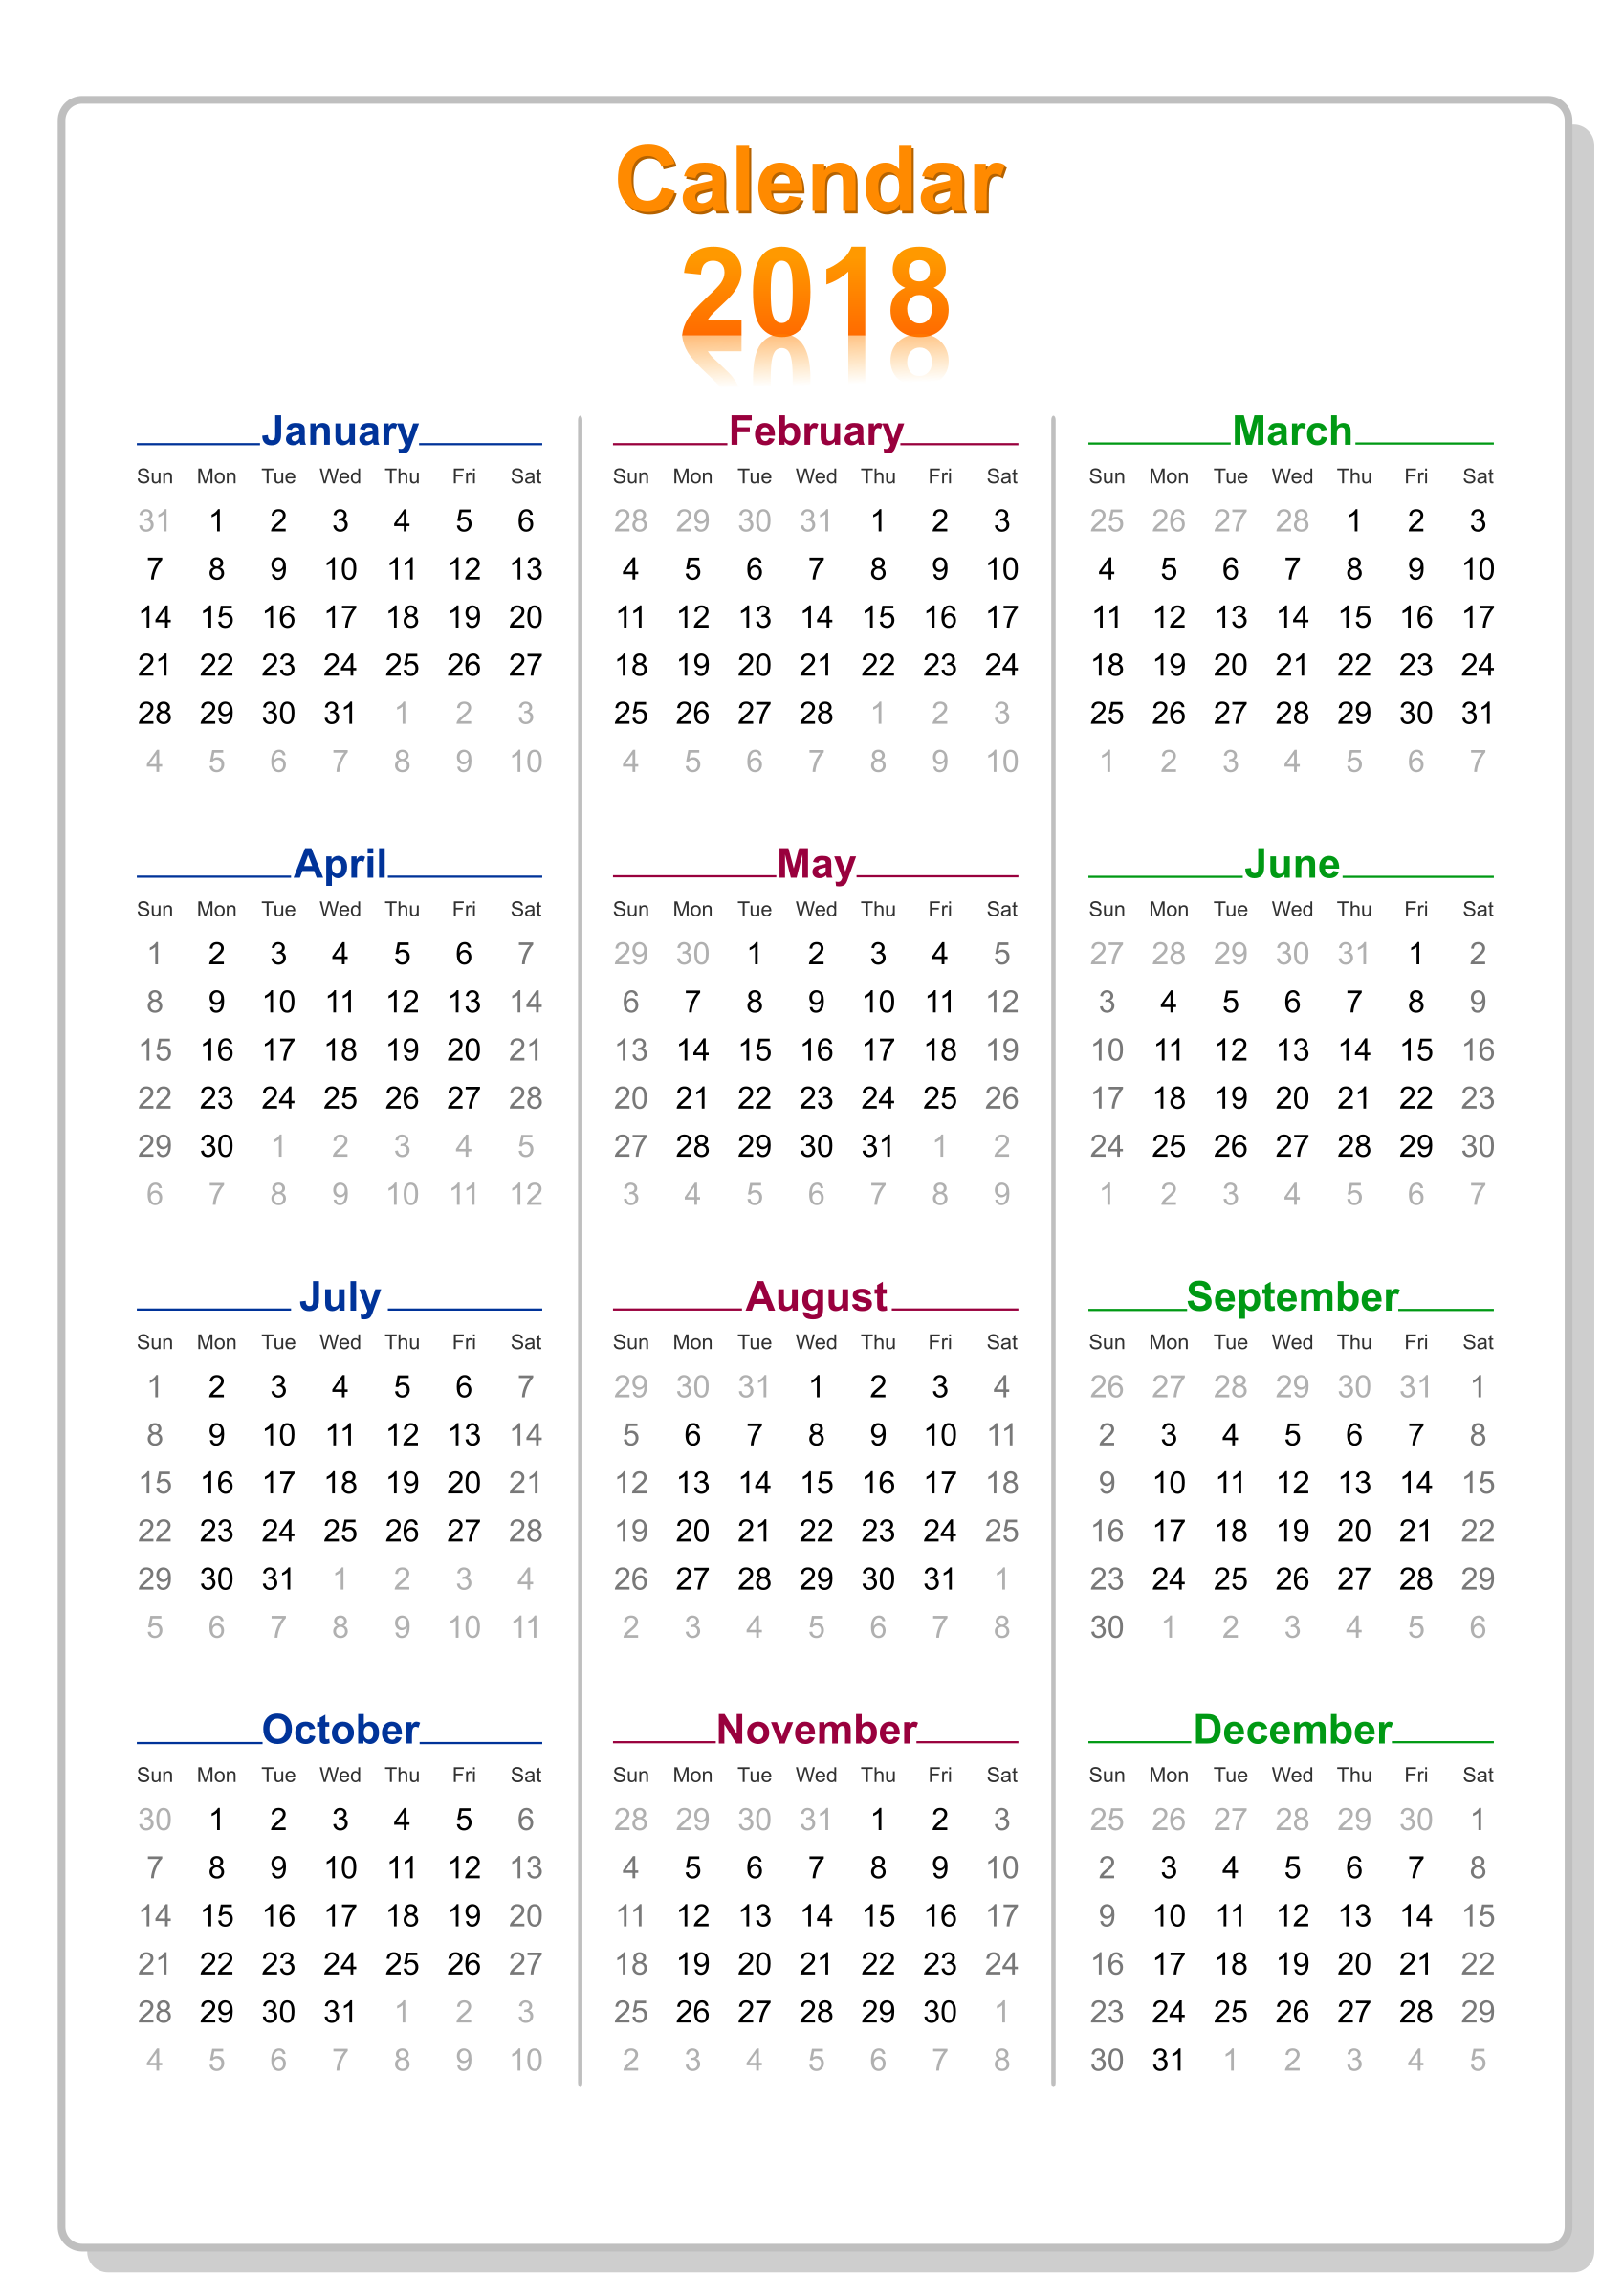 Calendar May 2018 Png : Clipart calendar colorful with border